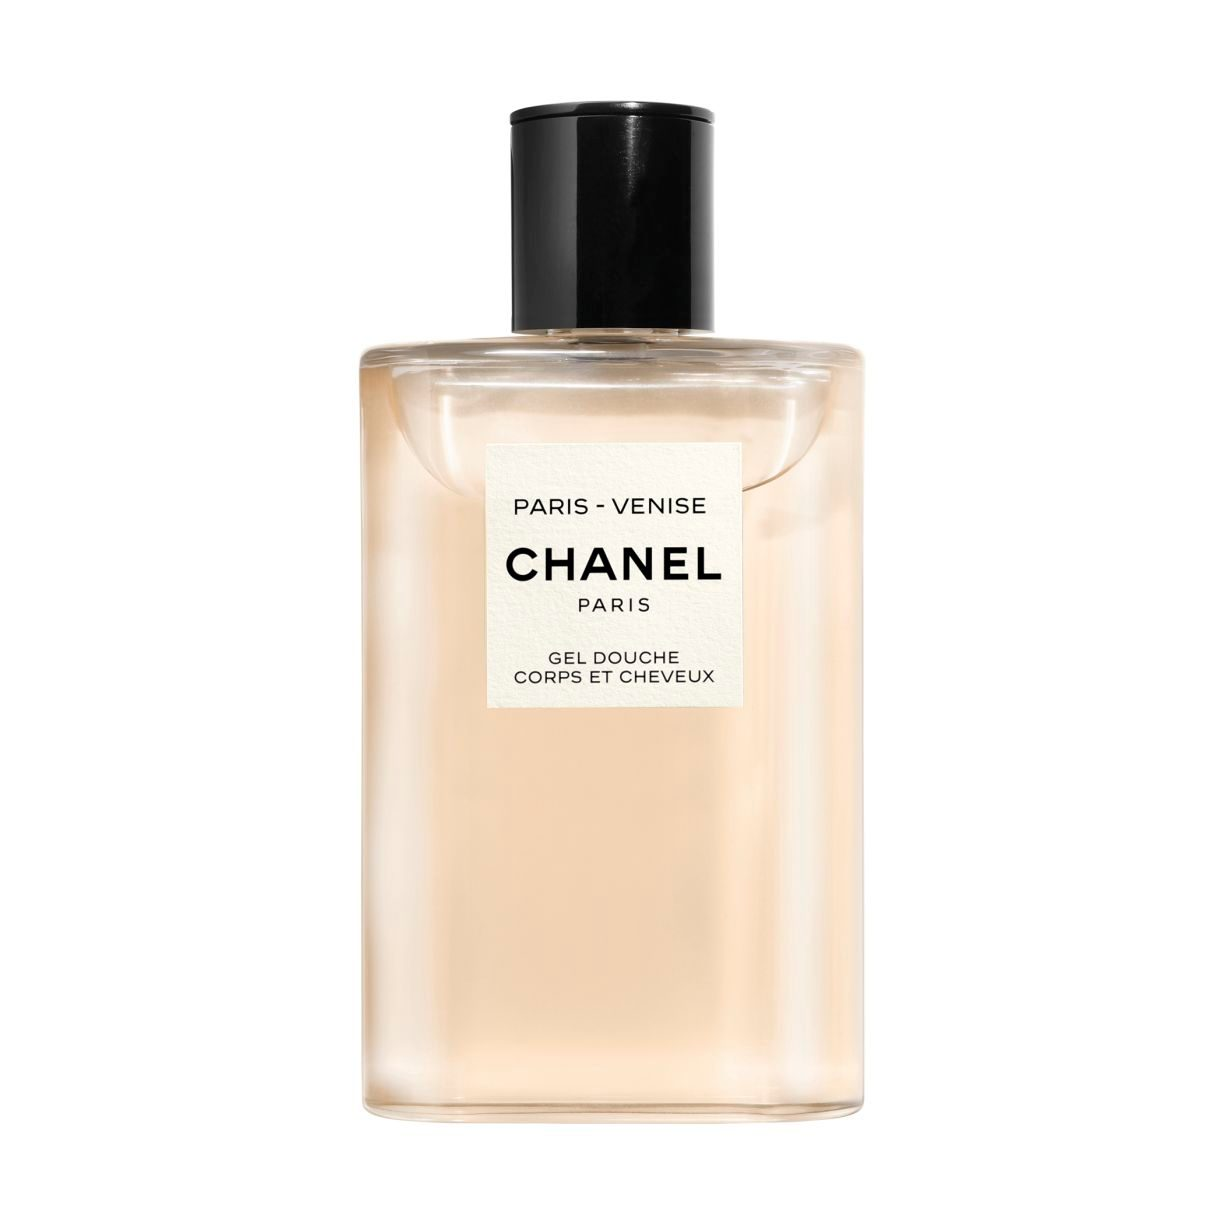 LES EAUX DE CHANEL PARIS - VENISE - HAIR AND BODY SHOWER GEL 200ml